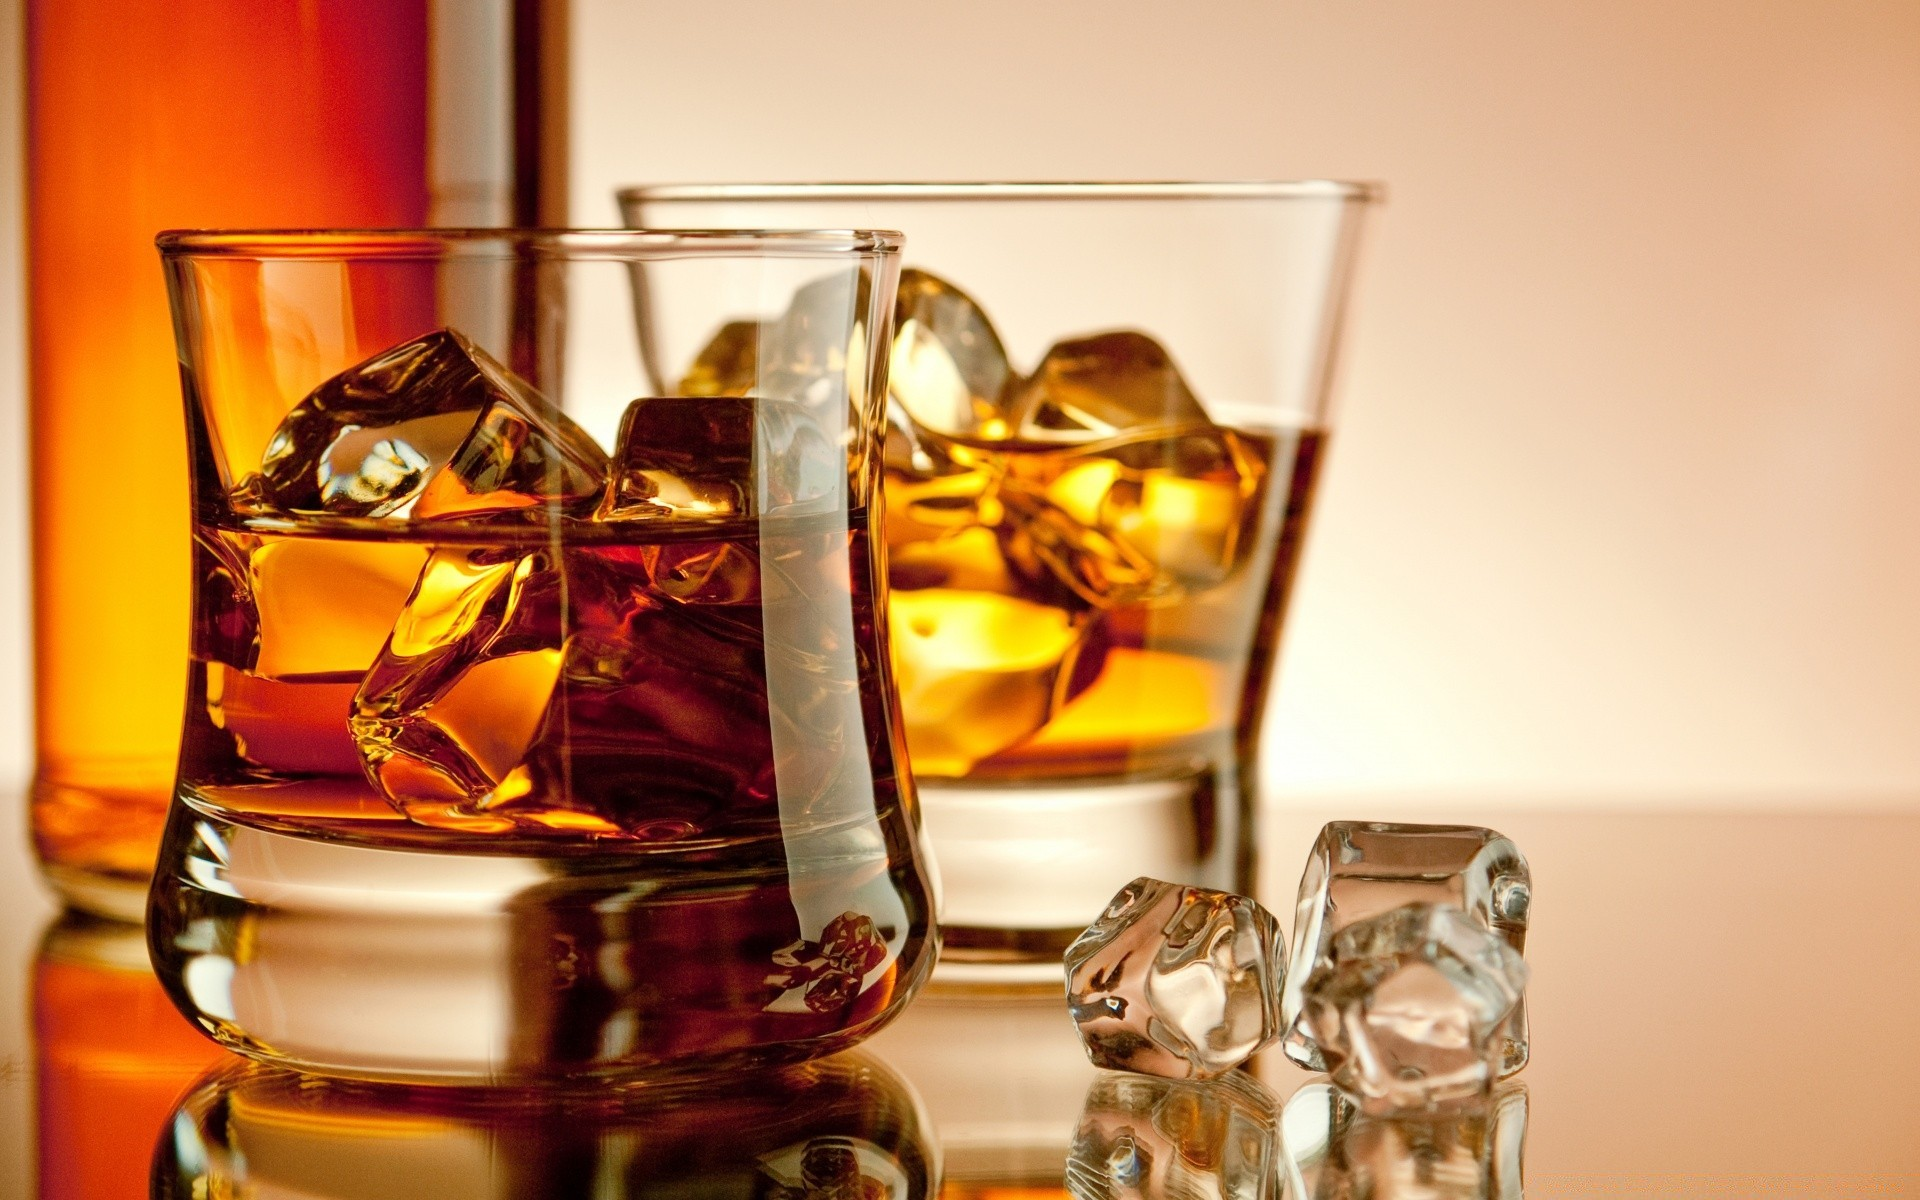 drinks whisky drink glass scotch alcohol bourbon wine liquor bar rum party ice luxury amber